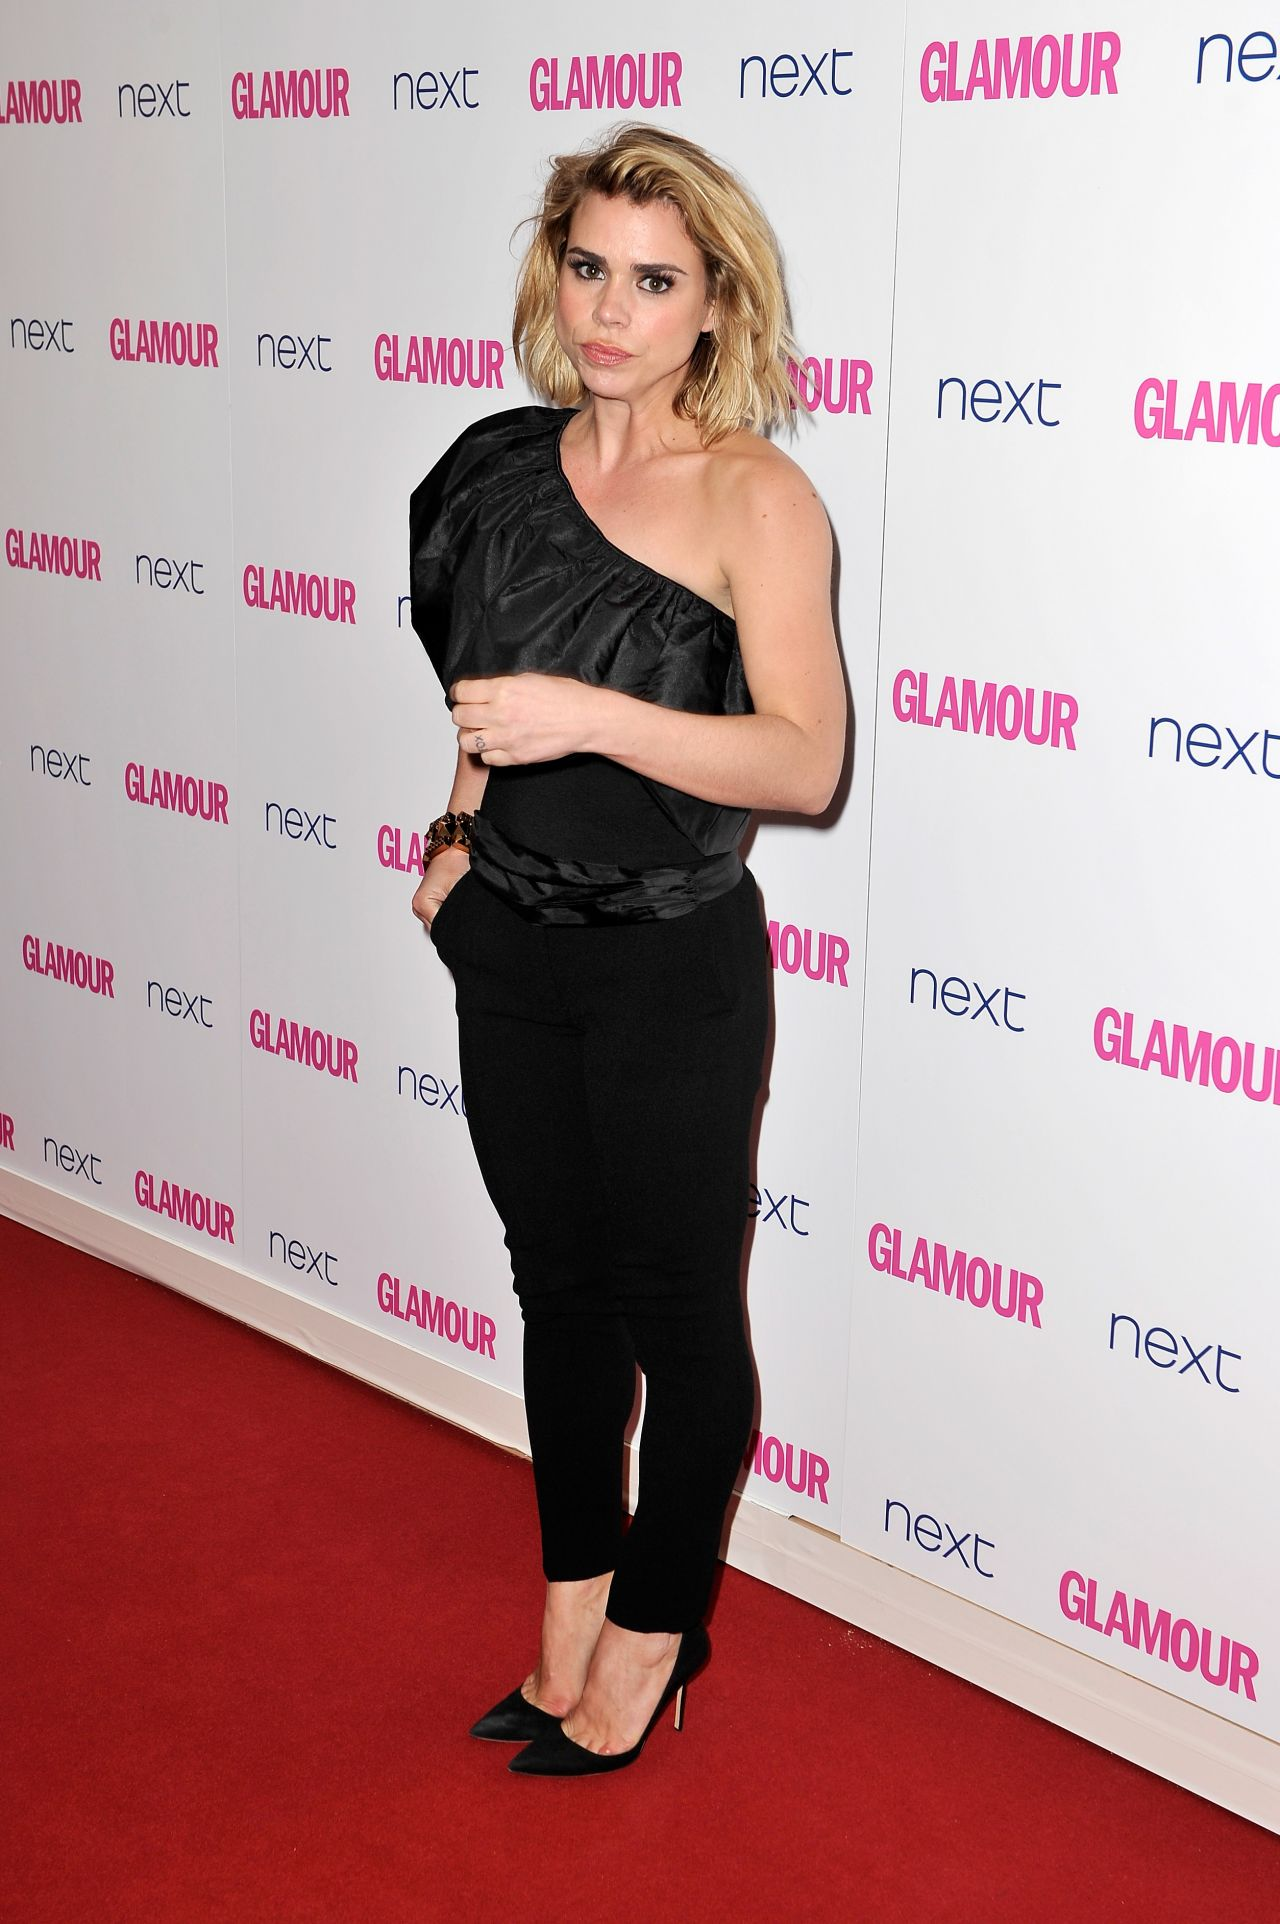 Billie Piper - 2014 Glamour Women of the Year Awards in London